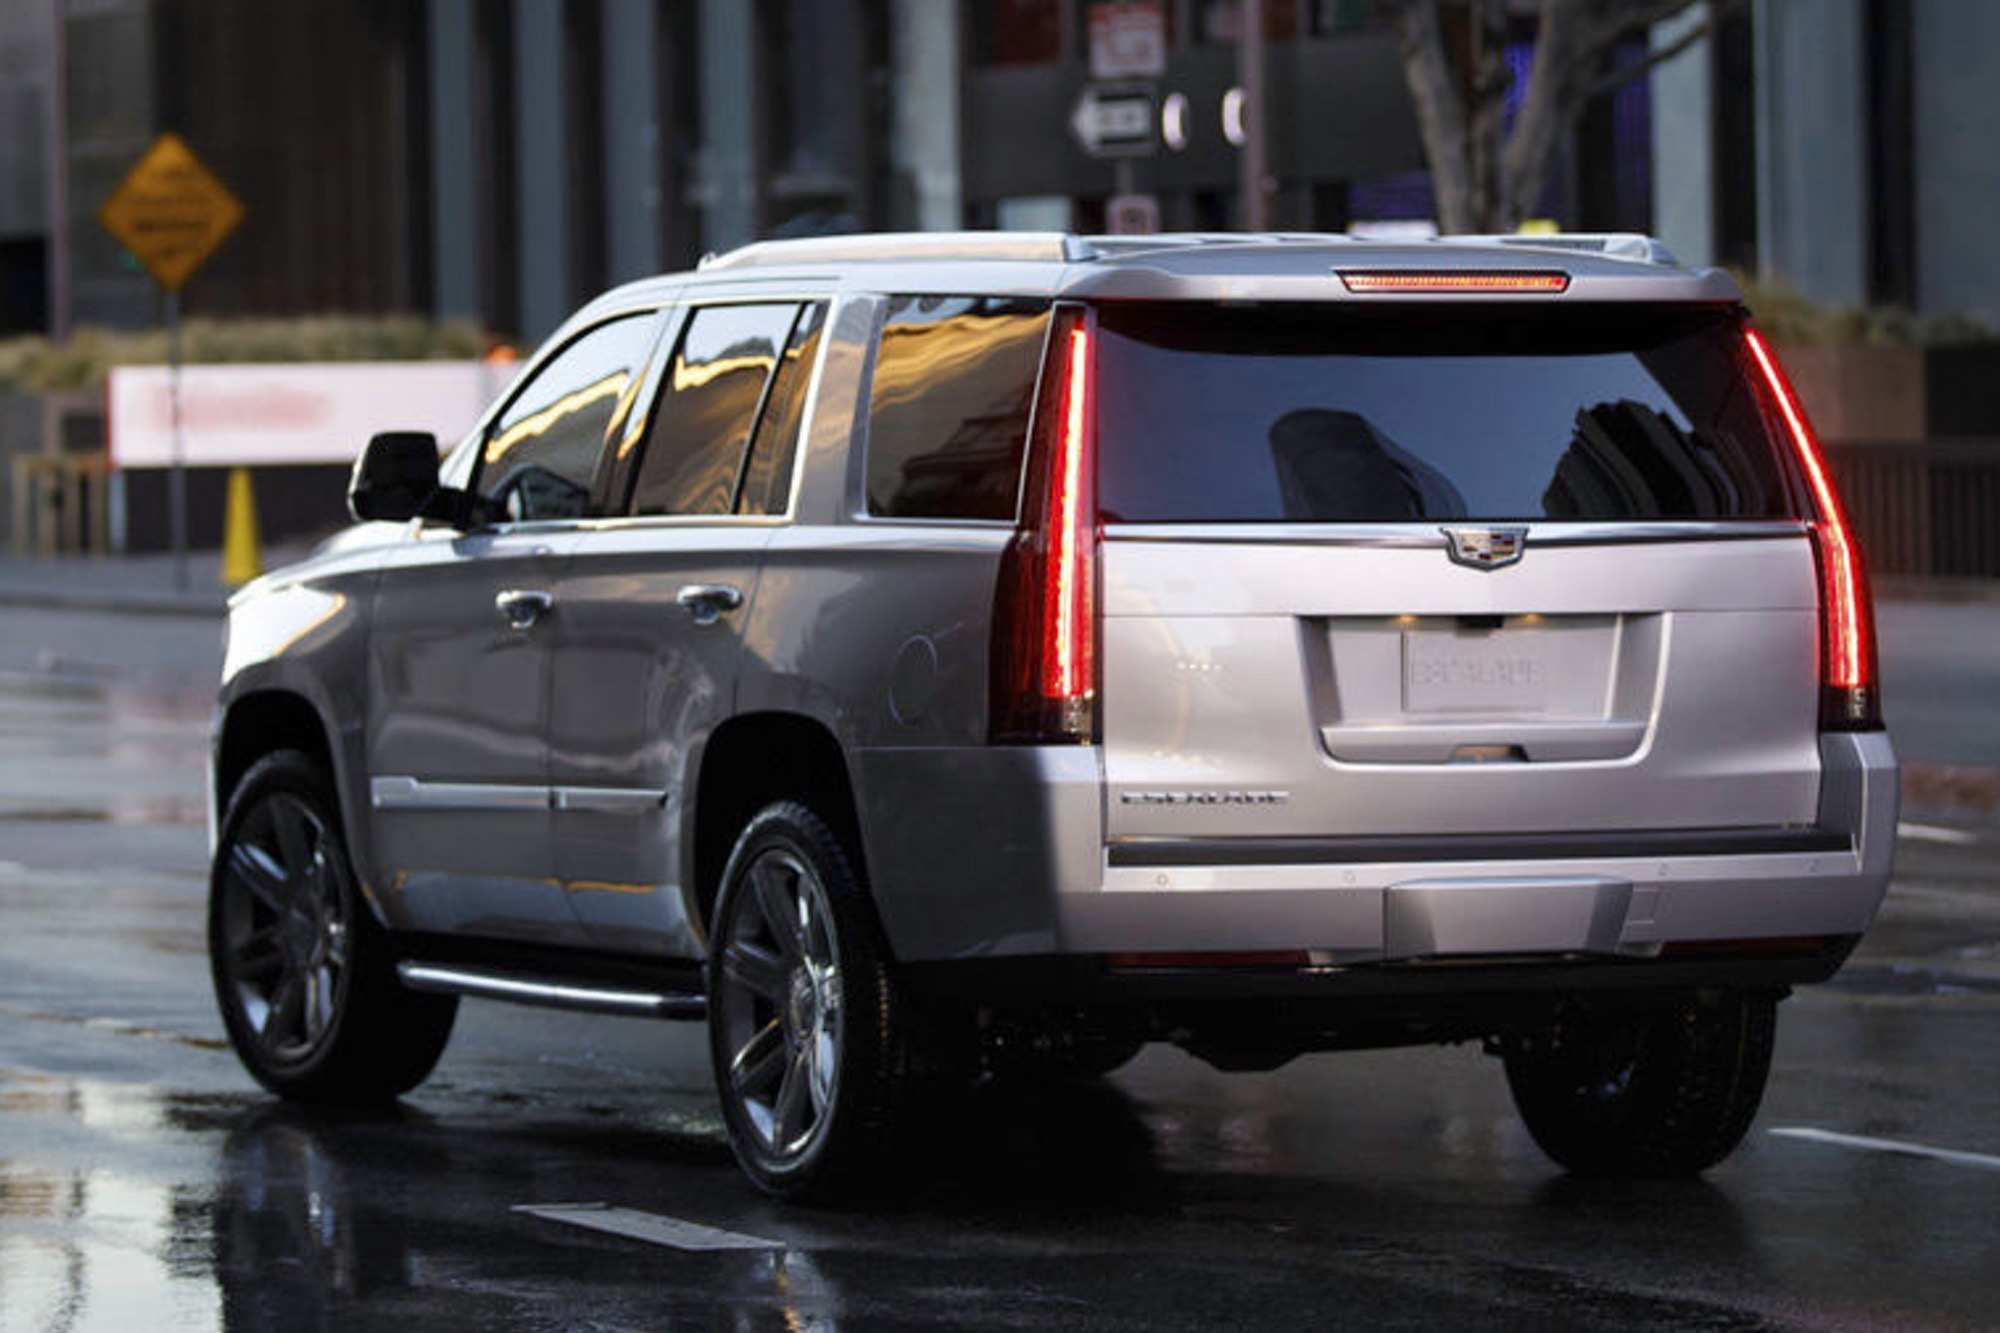 87 The Best 2020 Cadillac Escalade Luxury Suv Overview